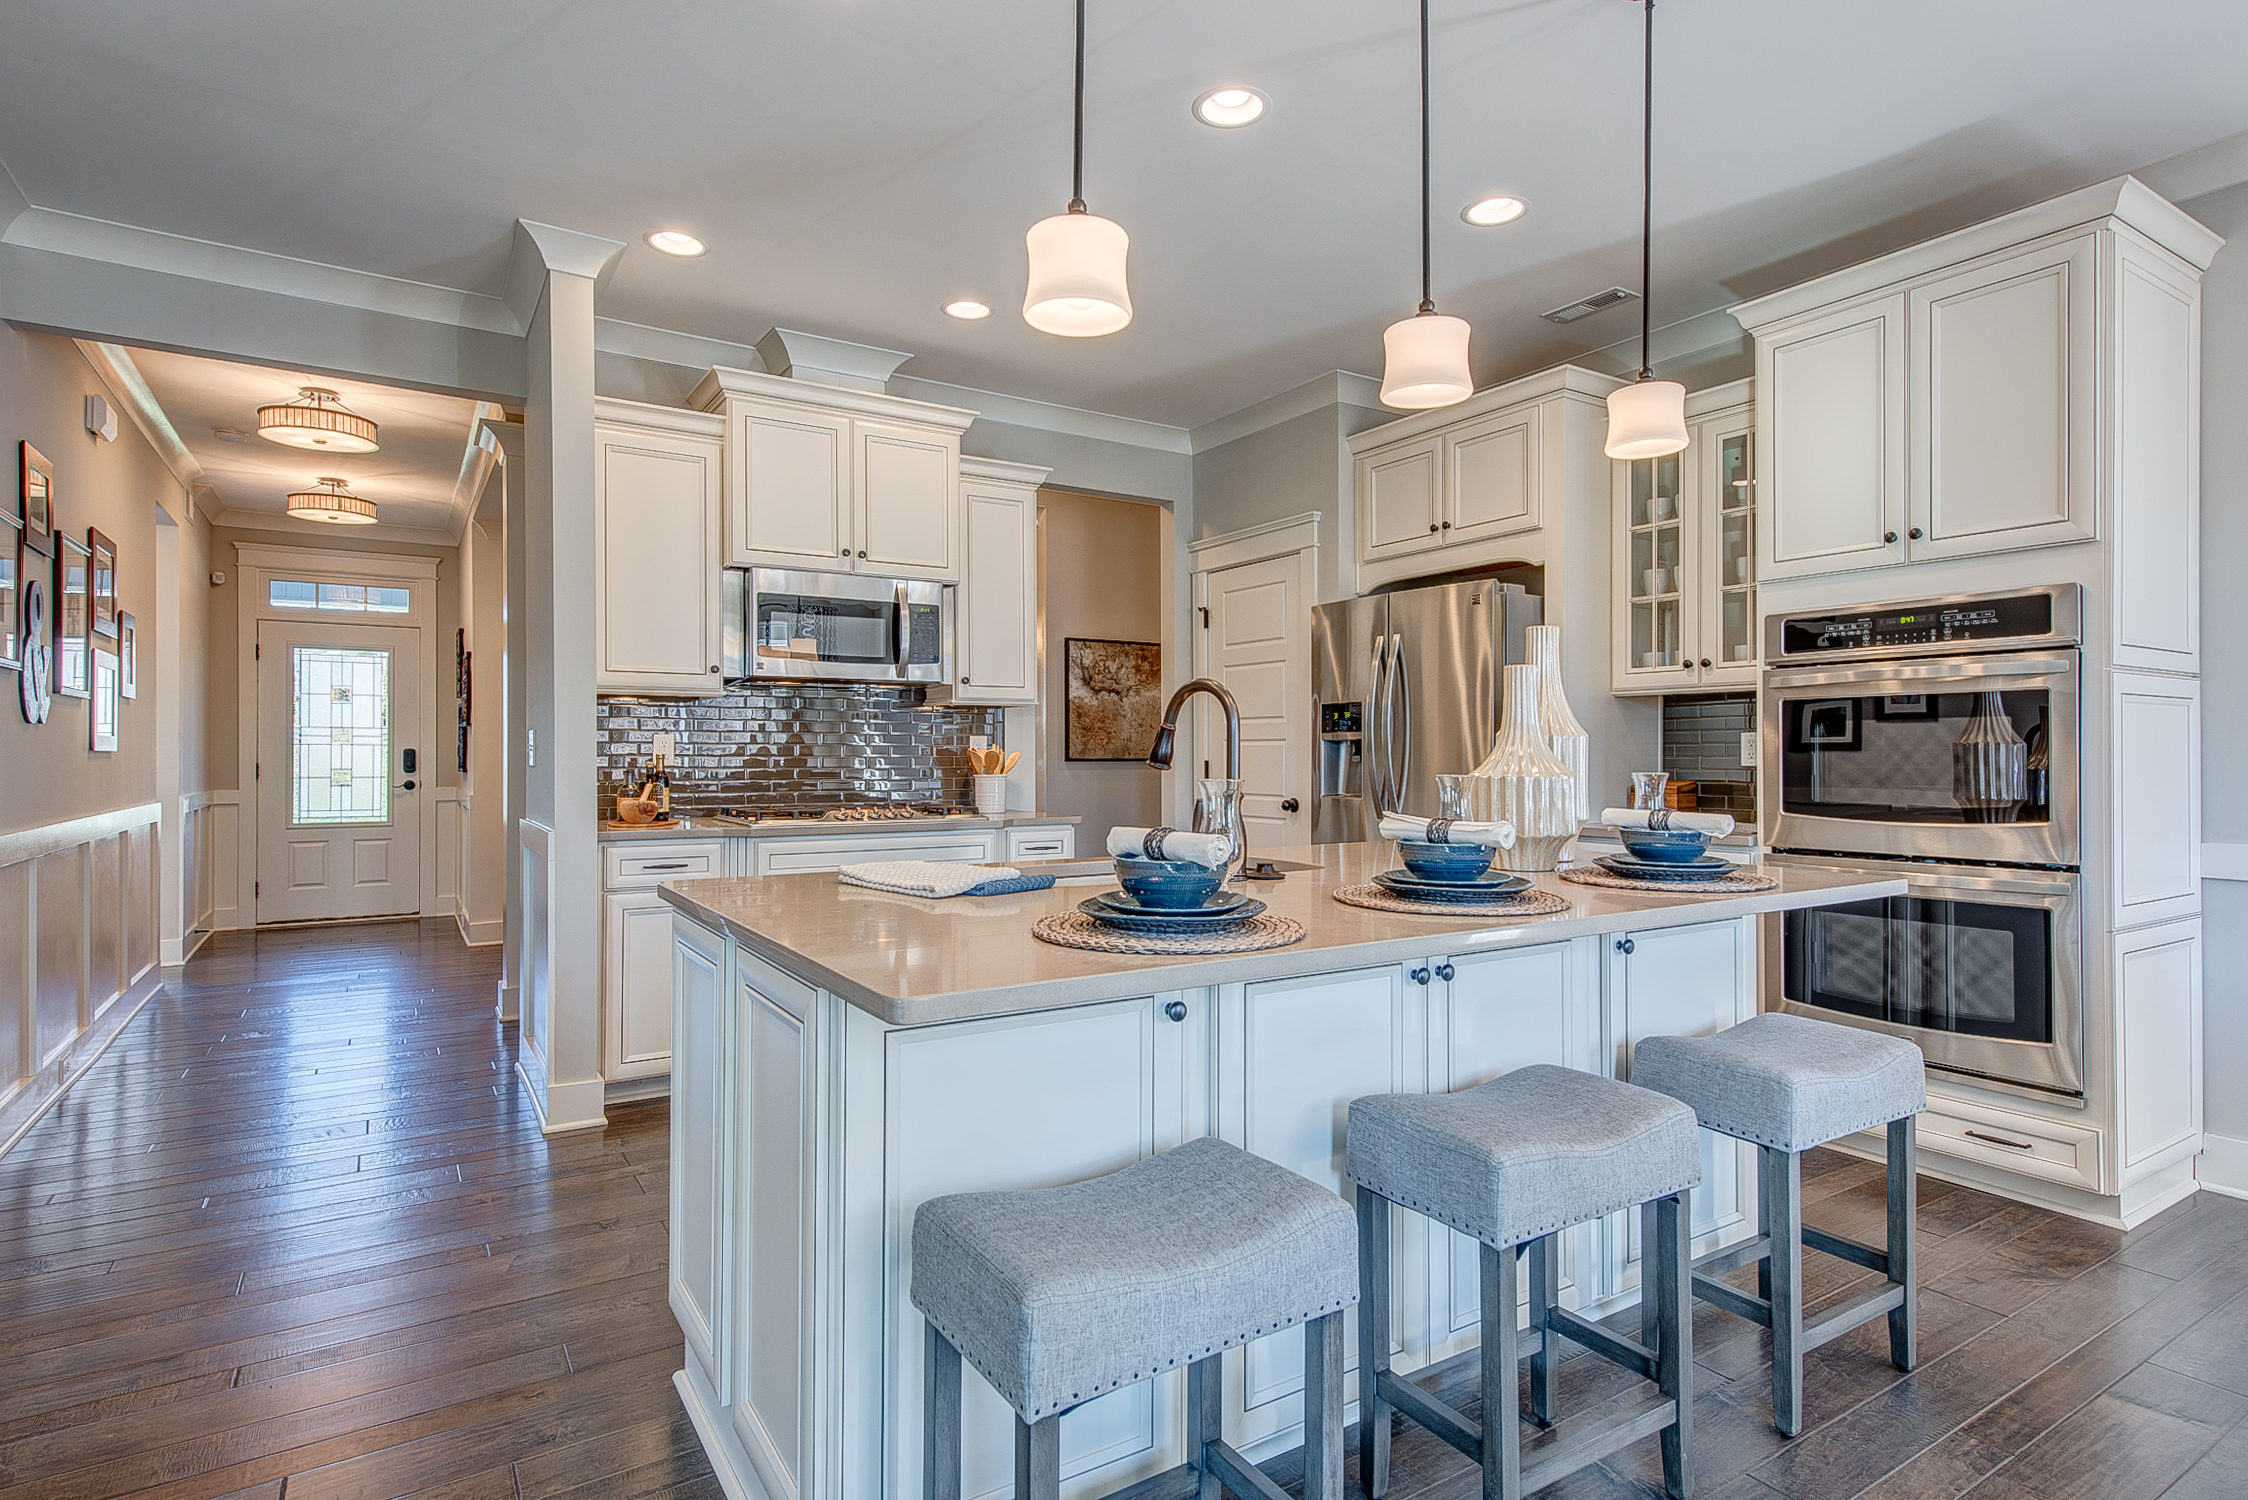 104-bushney-loop-mooresville-print-015-12-kitchen-2248x1500-300dpi_33628713111_o.jpg